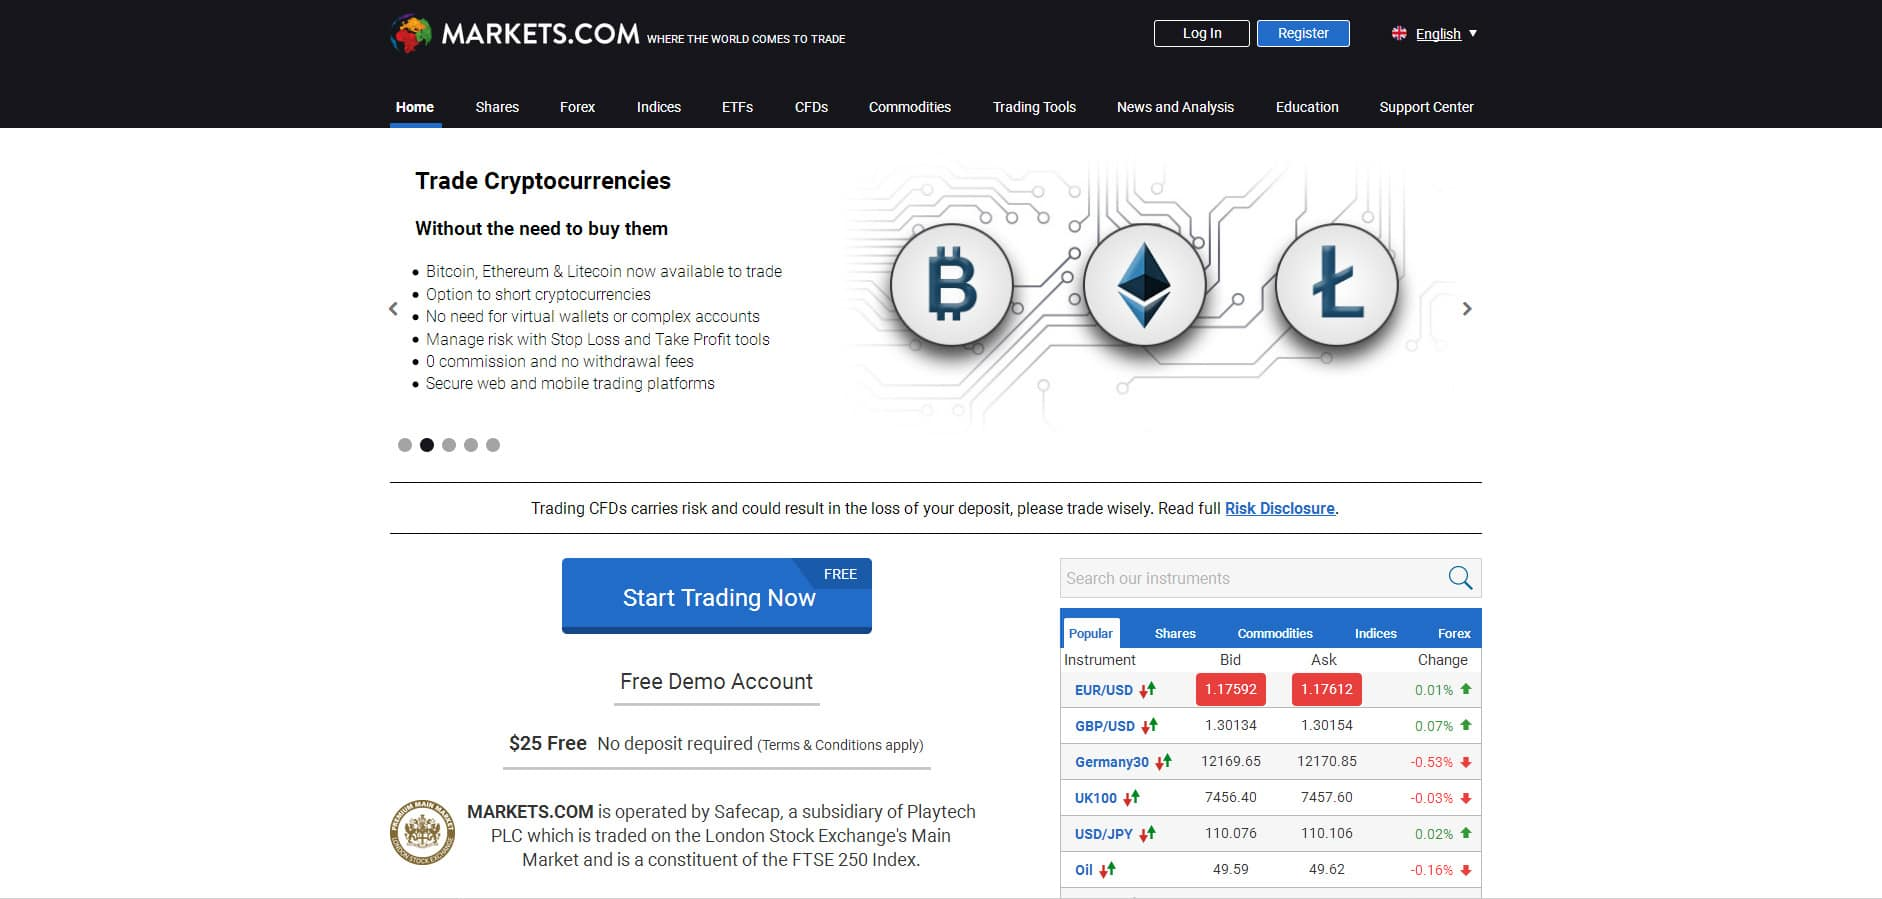 Markets.com Home Page Screenshot